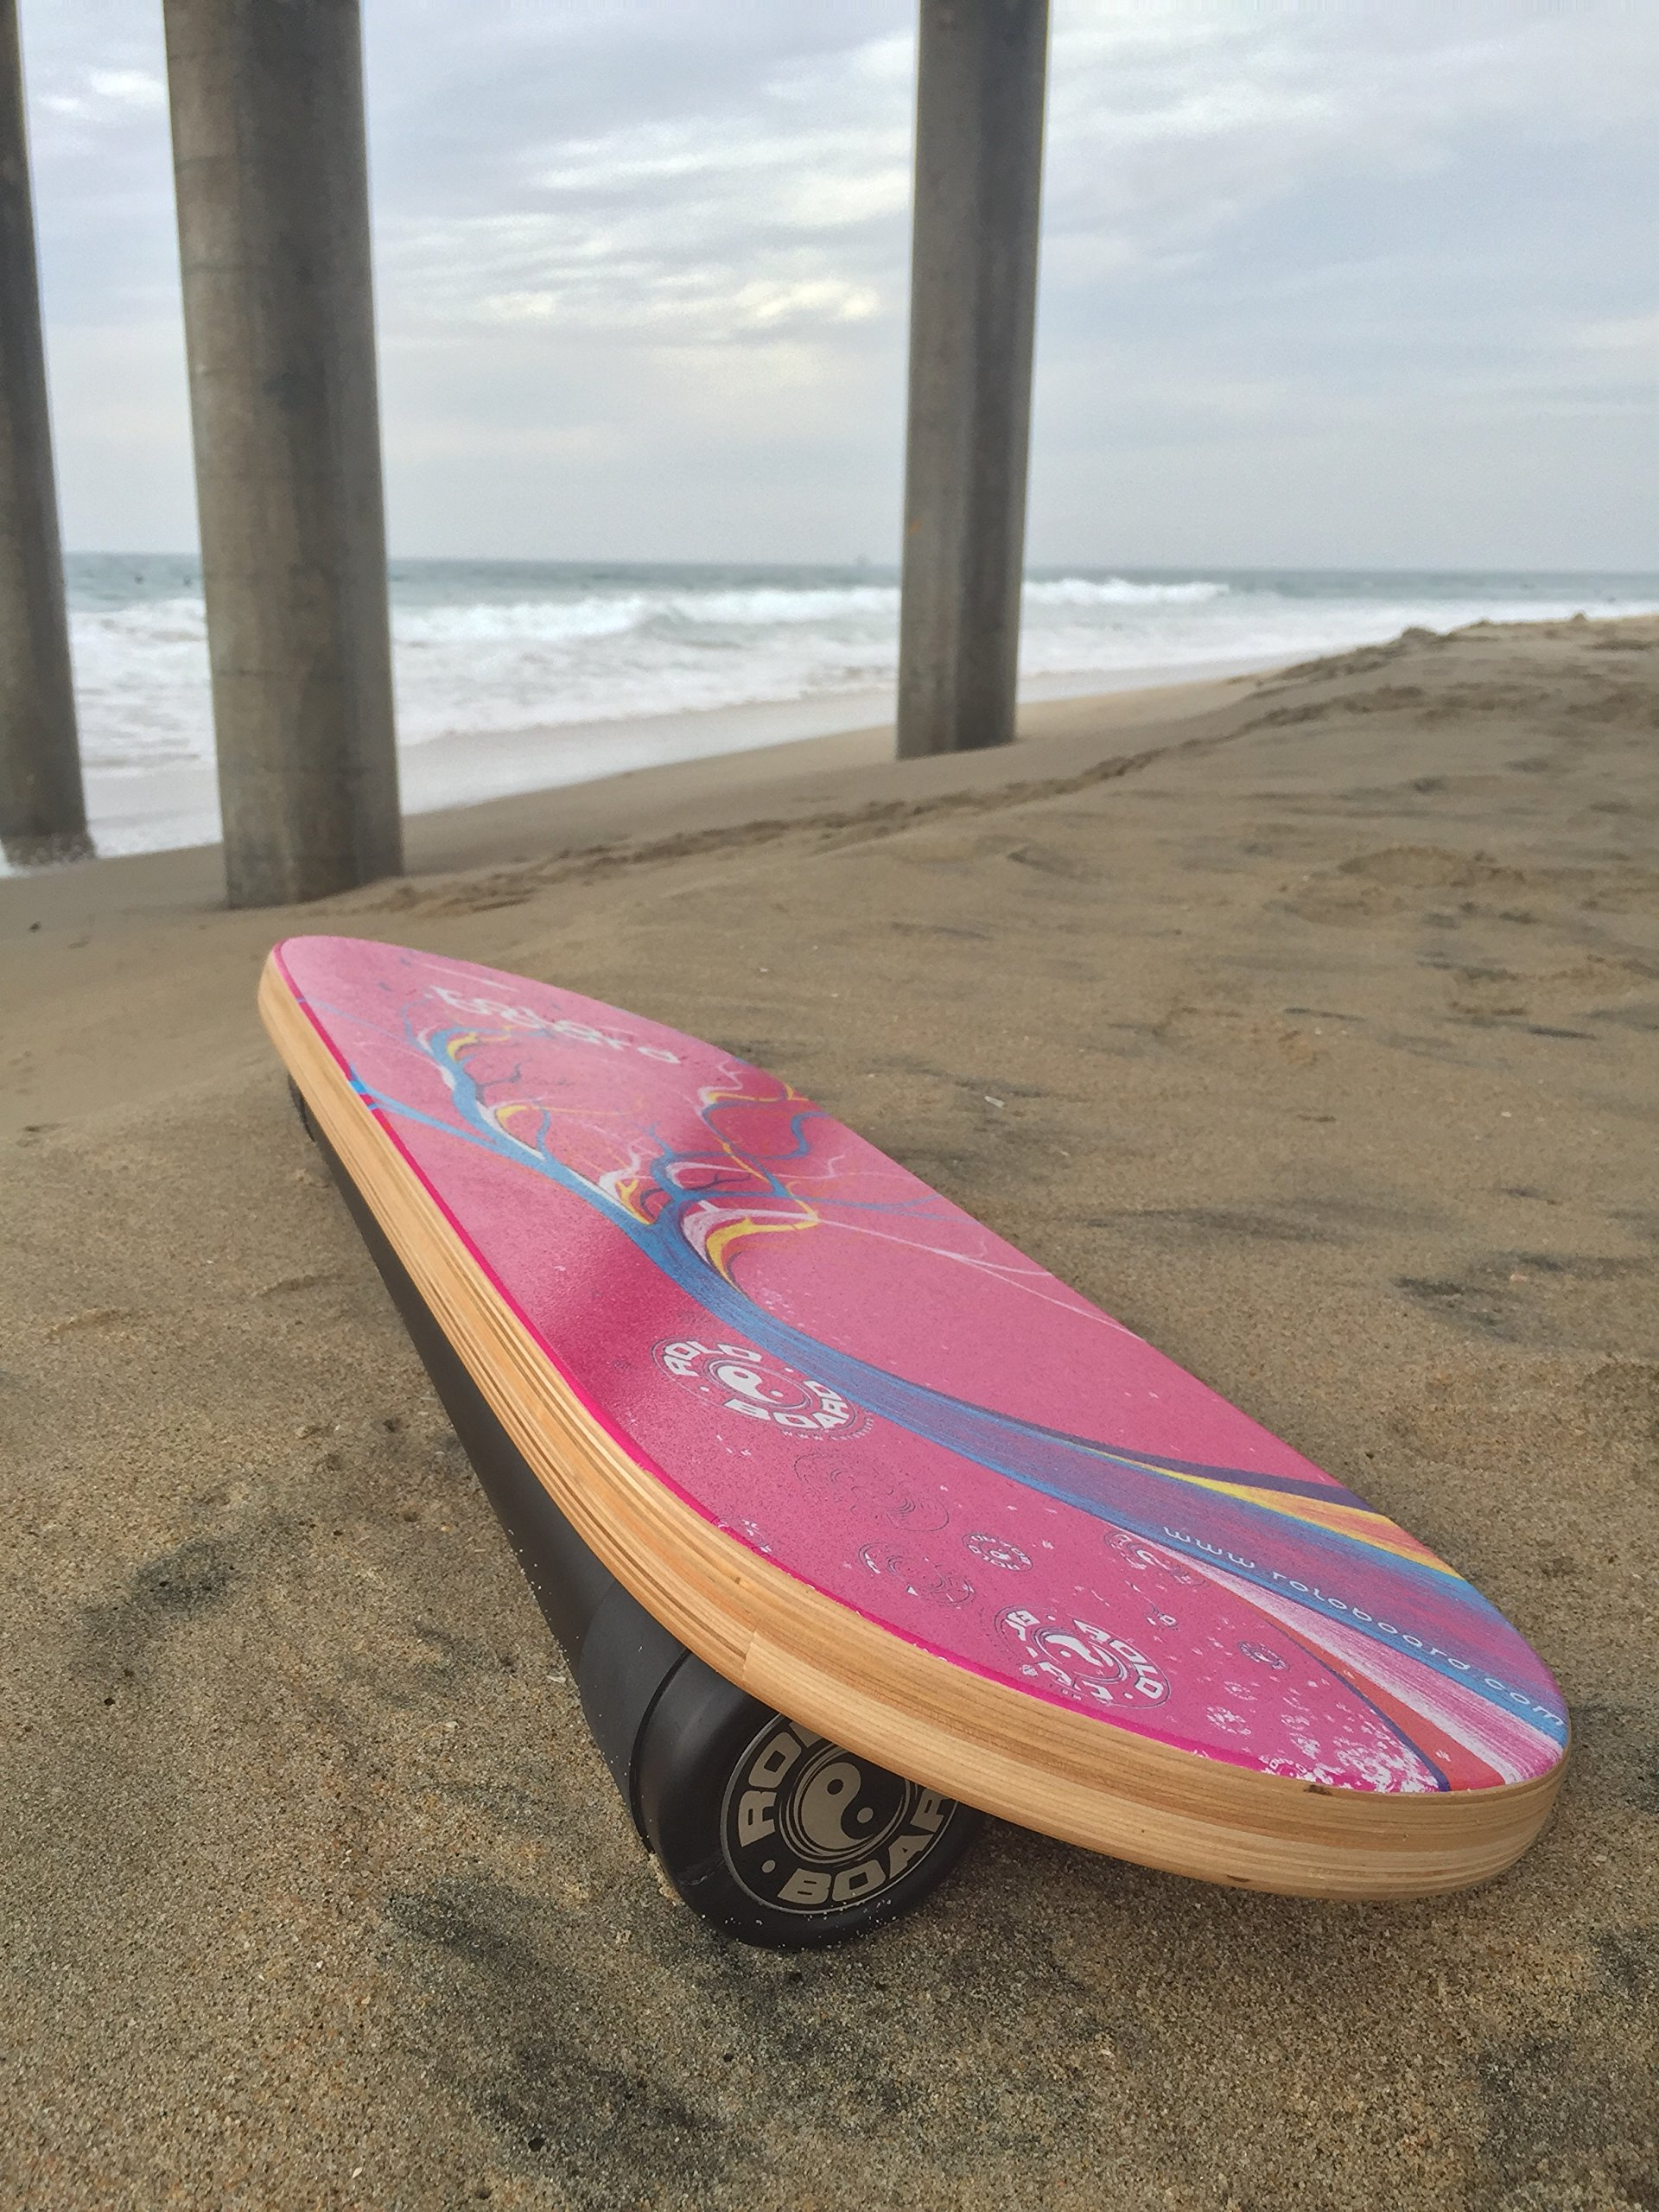 Rolo Balance Board Pink Bliss - Original Training Package by Rolo Board (Image #3)